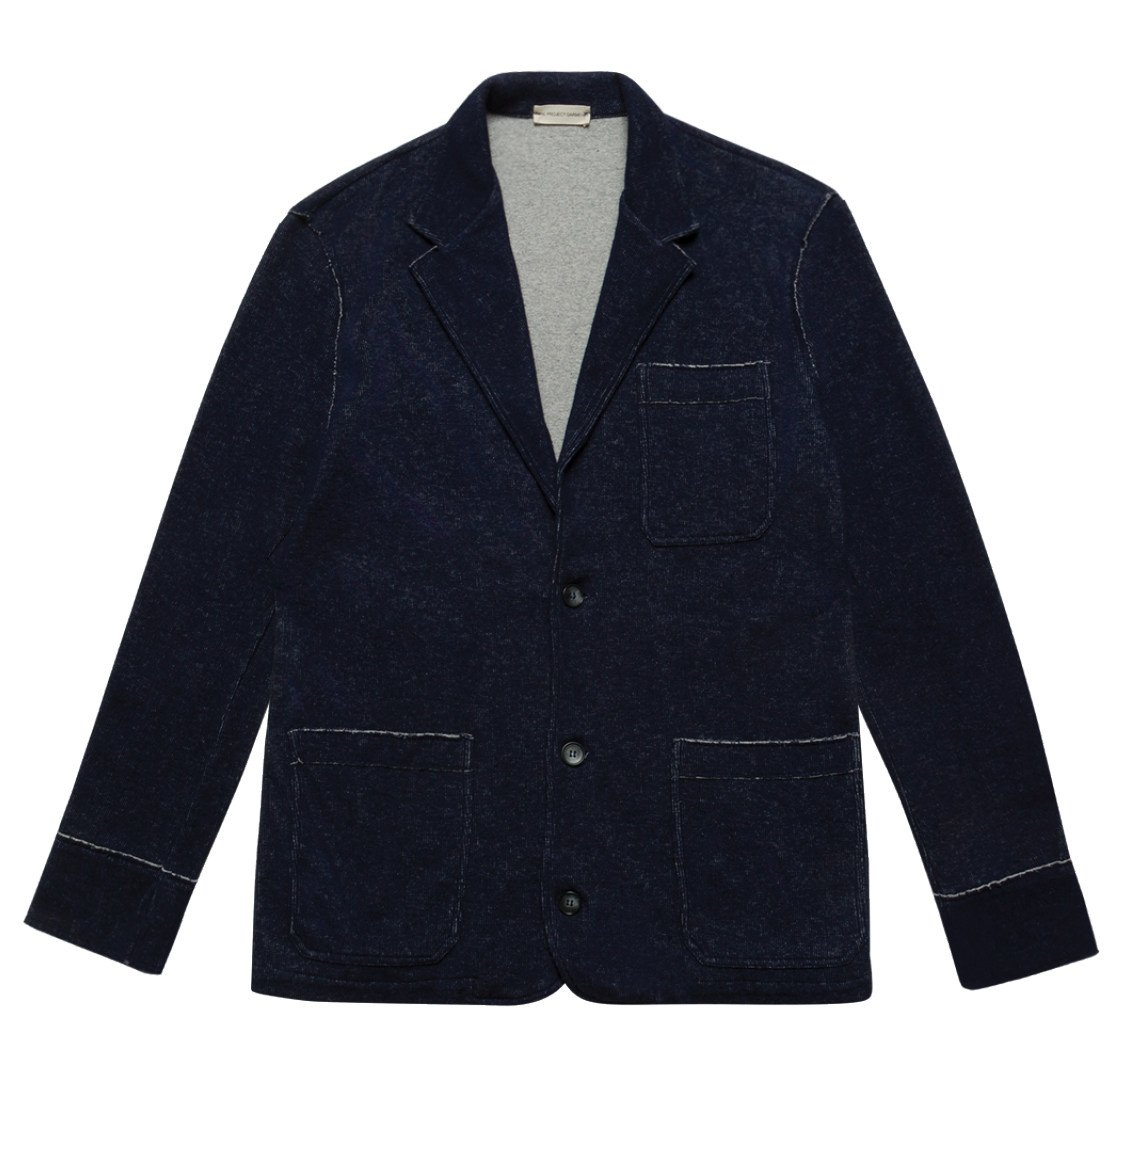 The Project Garments Slim-Fit Wool and Cotton Blend Unstructured Blazer Navy